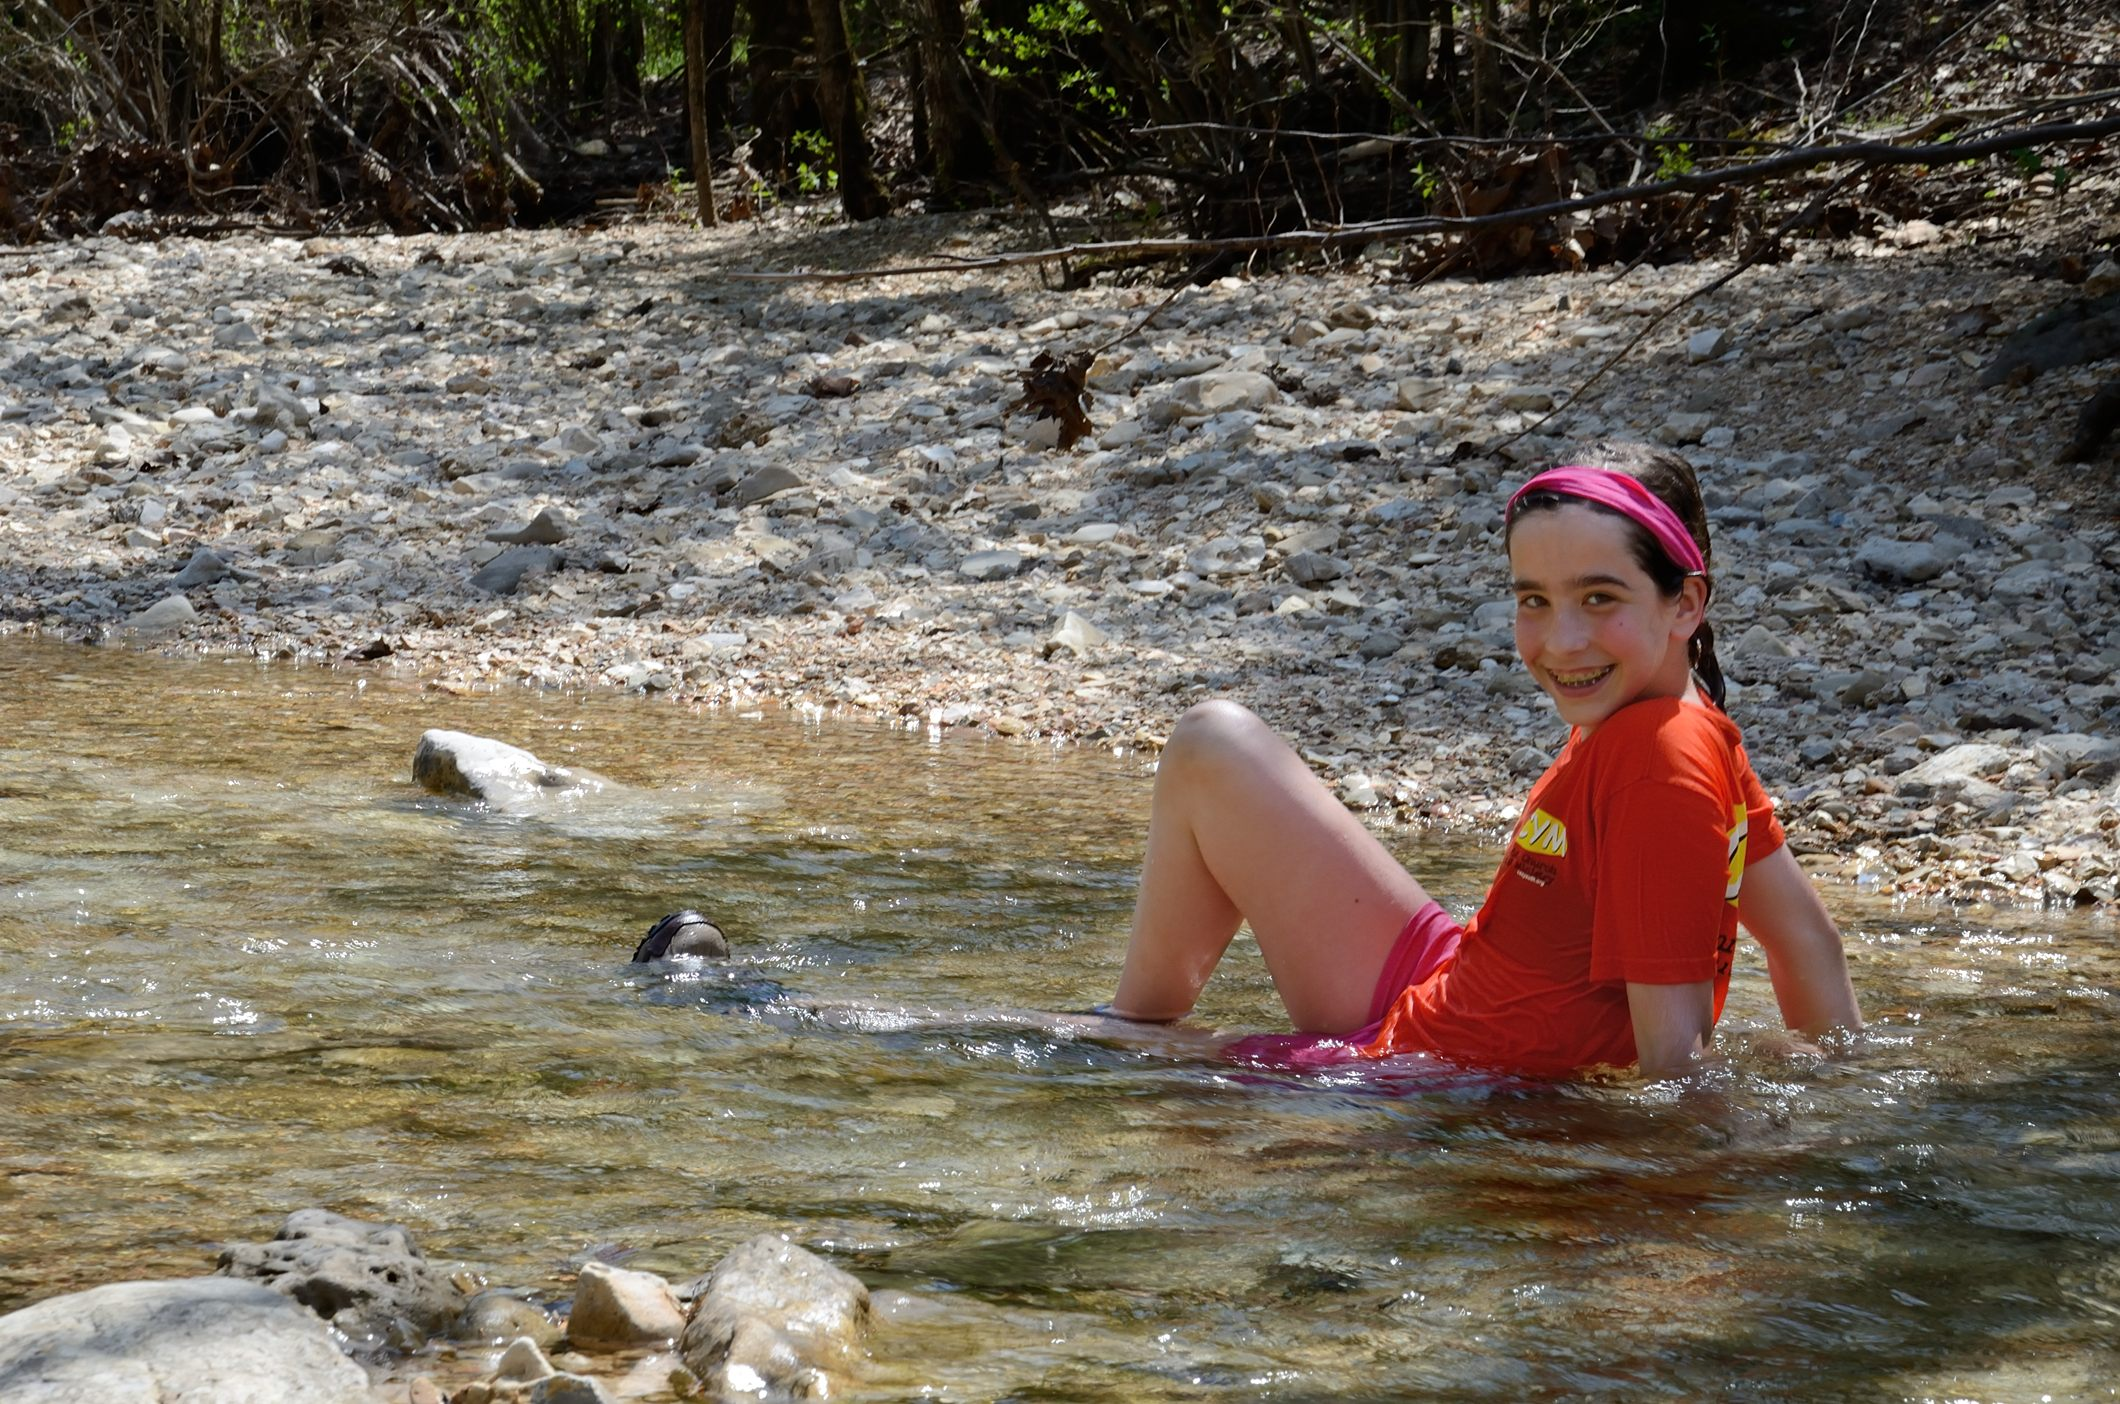 Record temperatures meant a wallow in Piney Creek was necessary